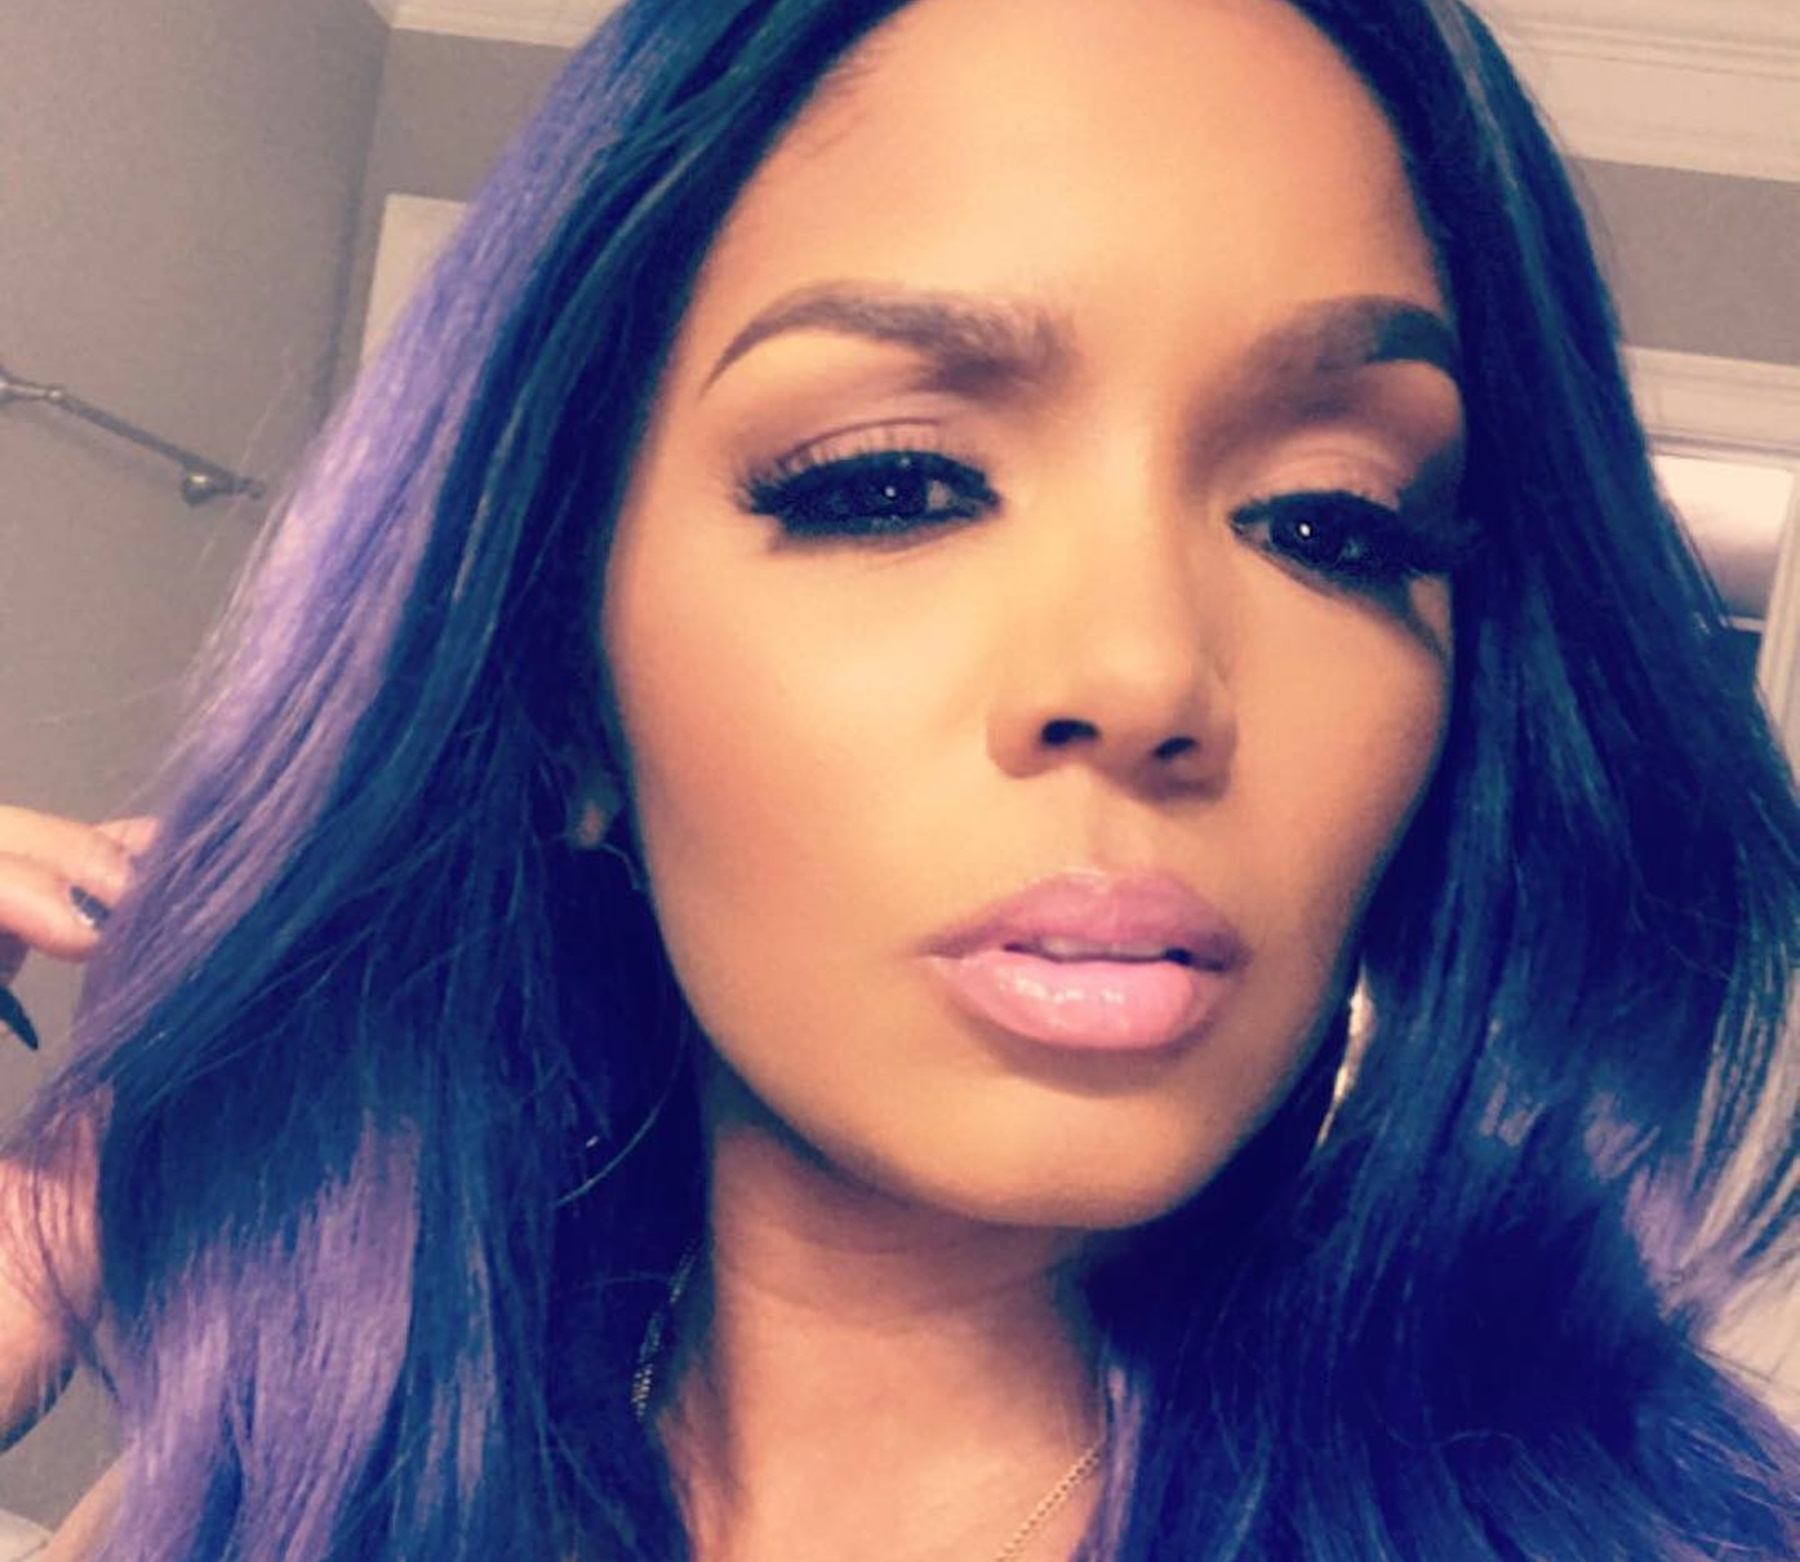 Rasheeda Frost's Wig Game Is The Best - Check Out The Latest Video In Which She's Showing Fans How Her Wig Stays On